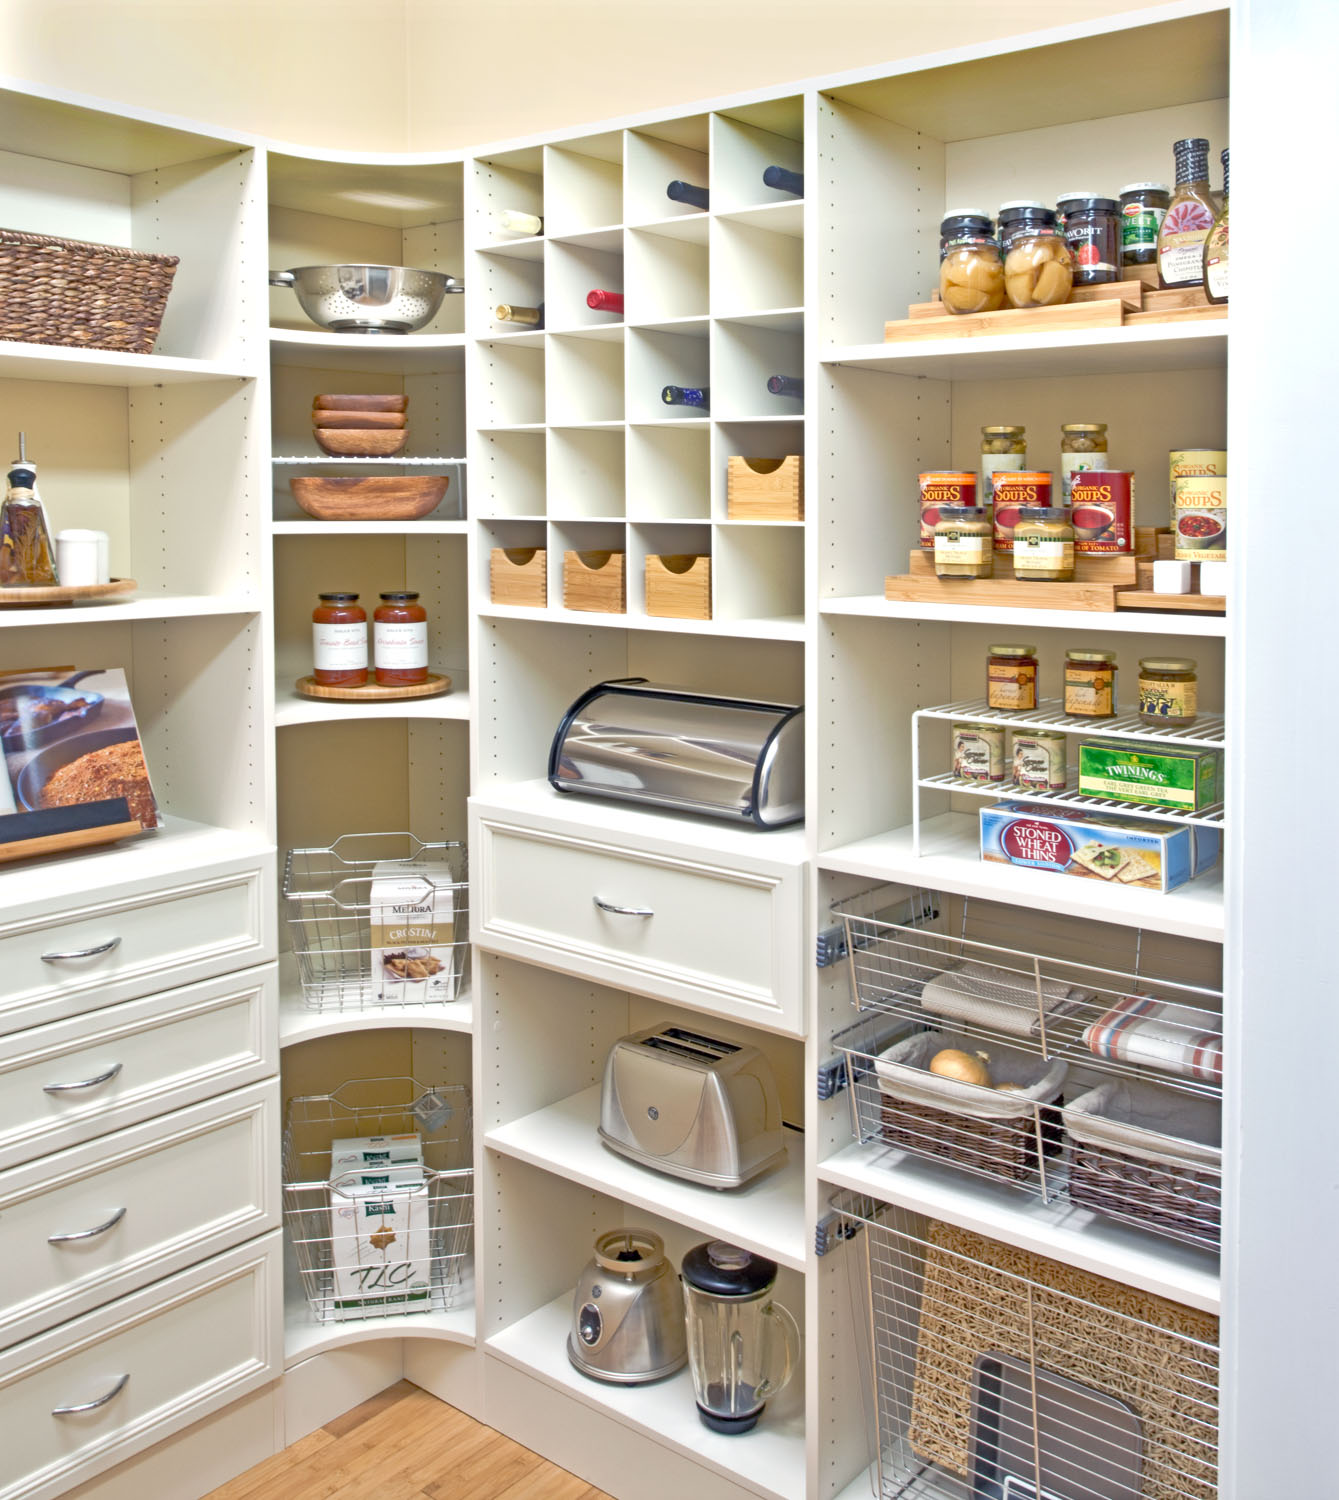 closet polishedhabitat makeover on ideas images best organizer storage copy decor organization pantry kitchen